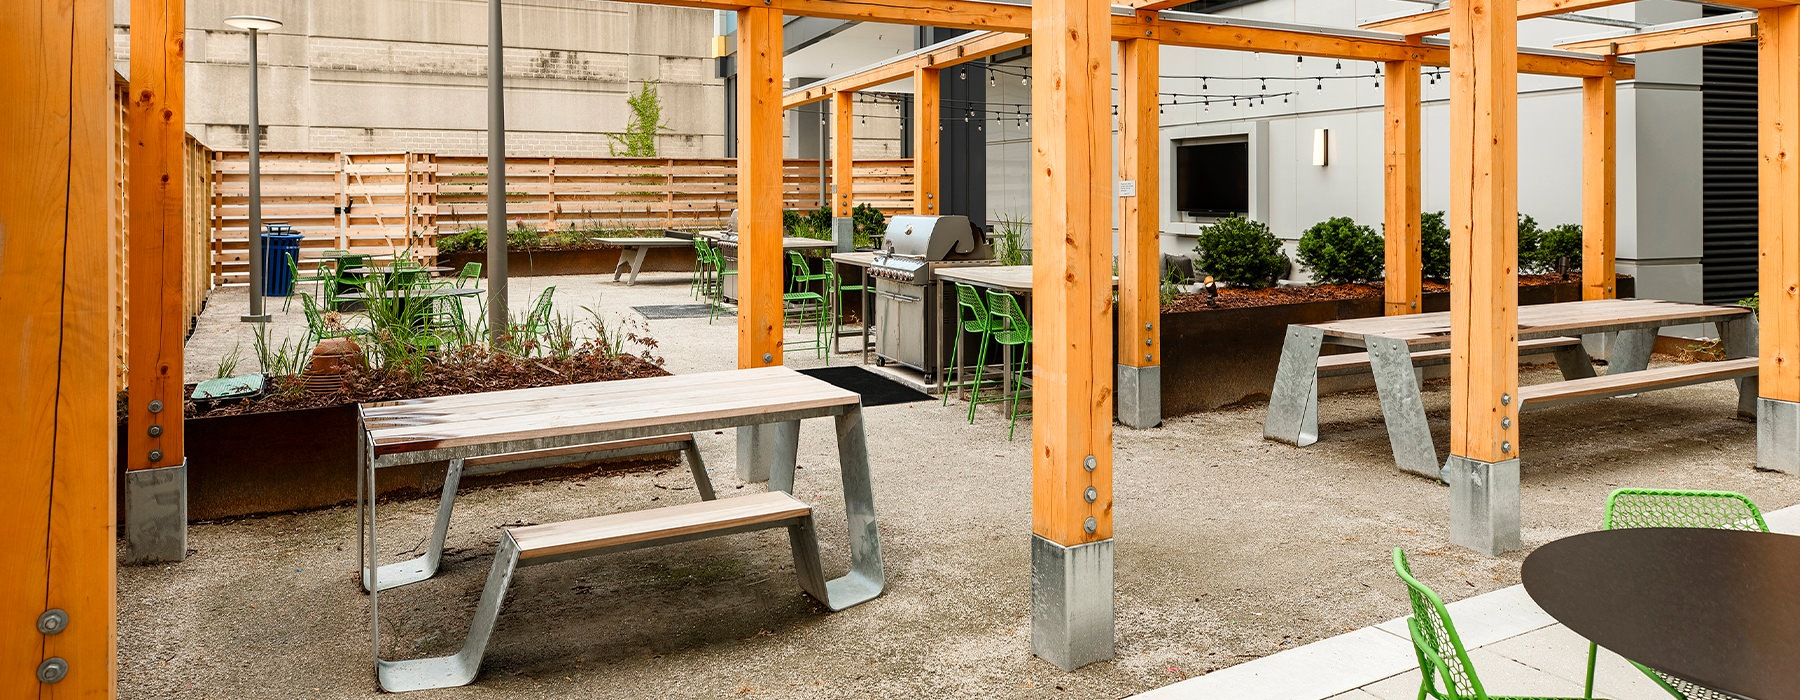 Outdoor community space with tables and a grill